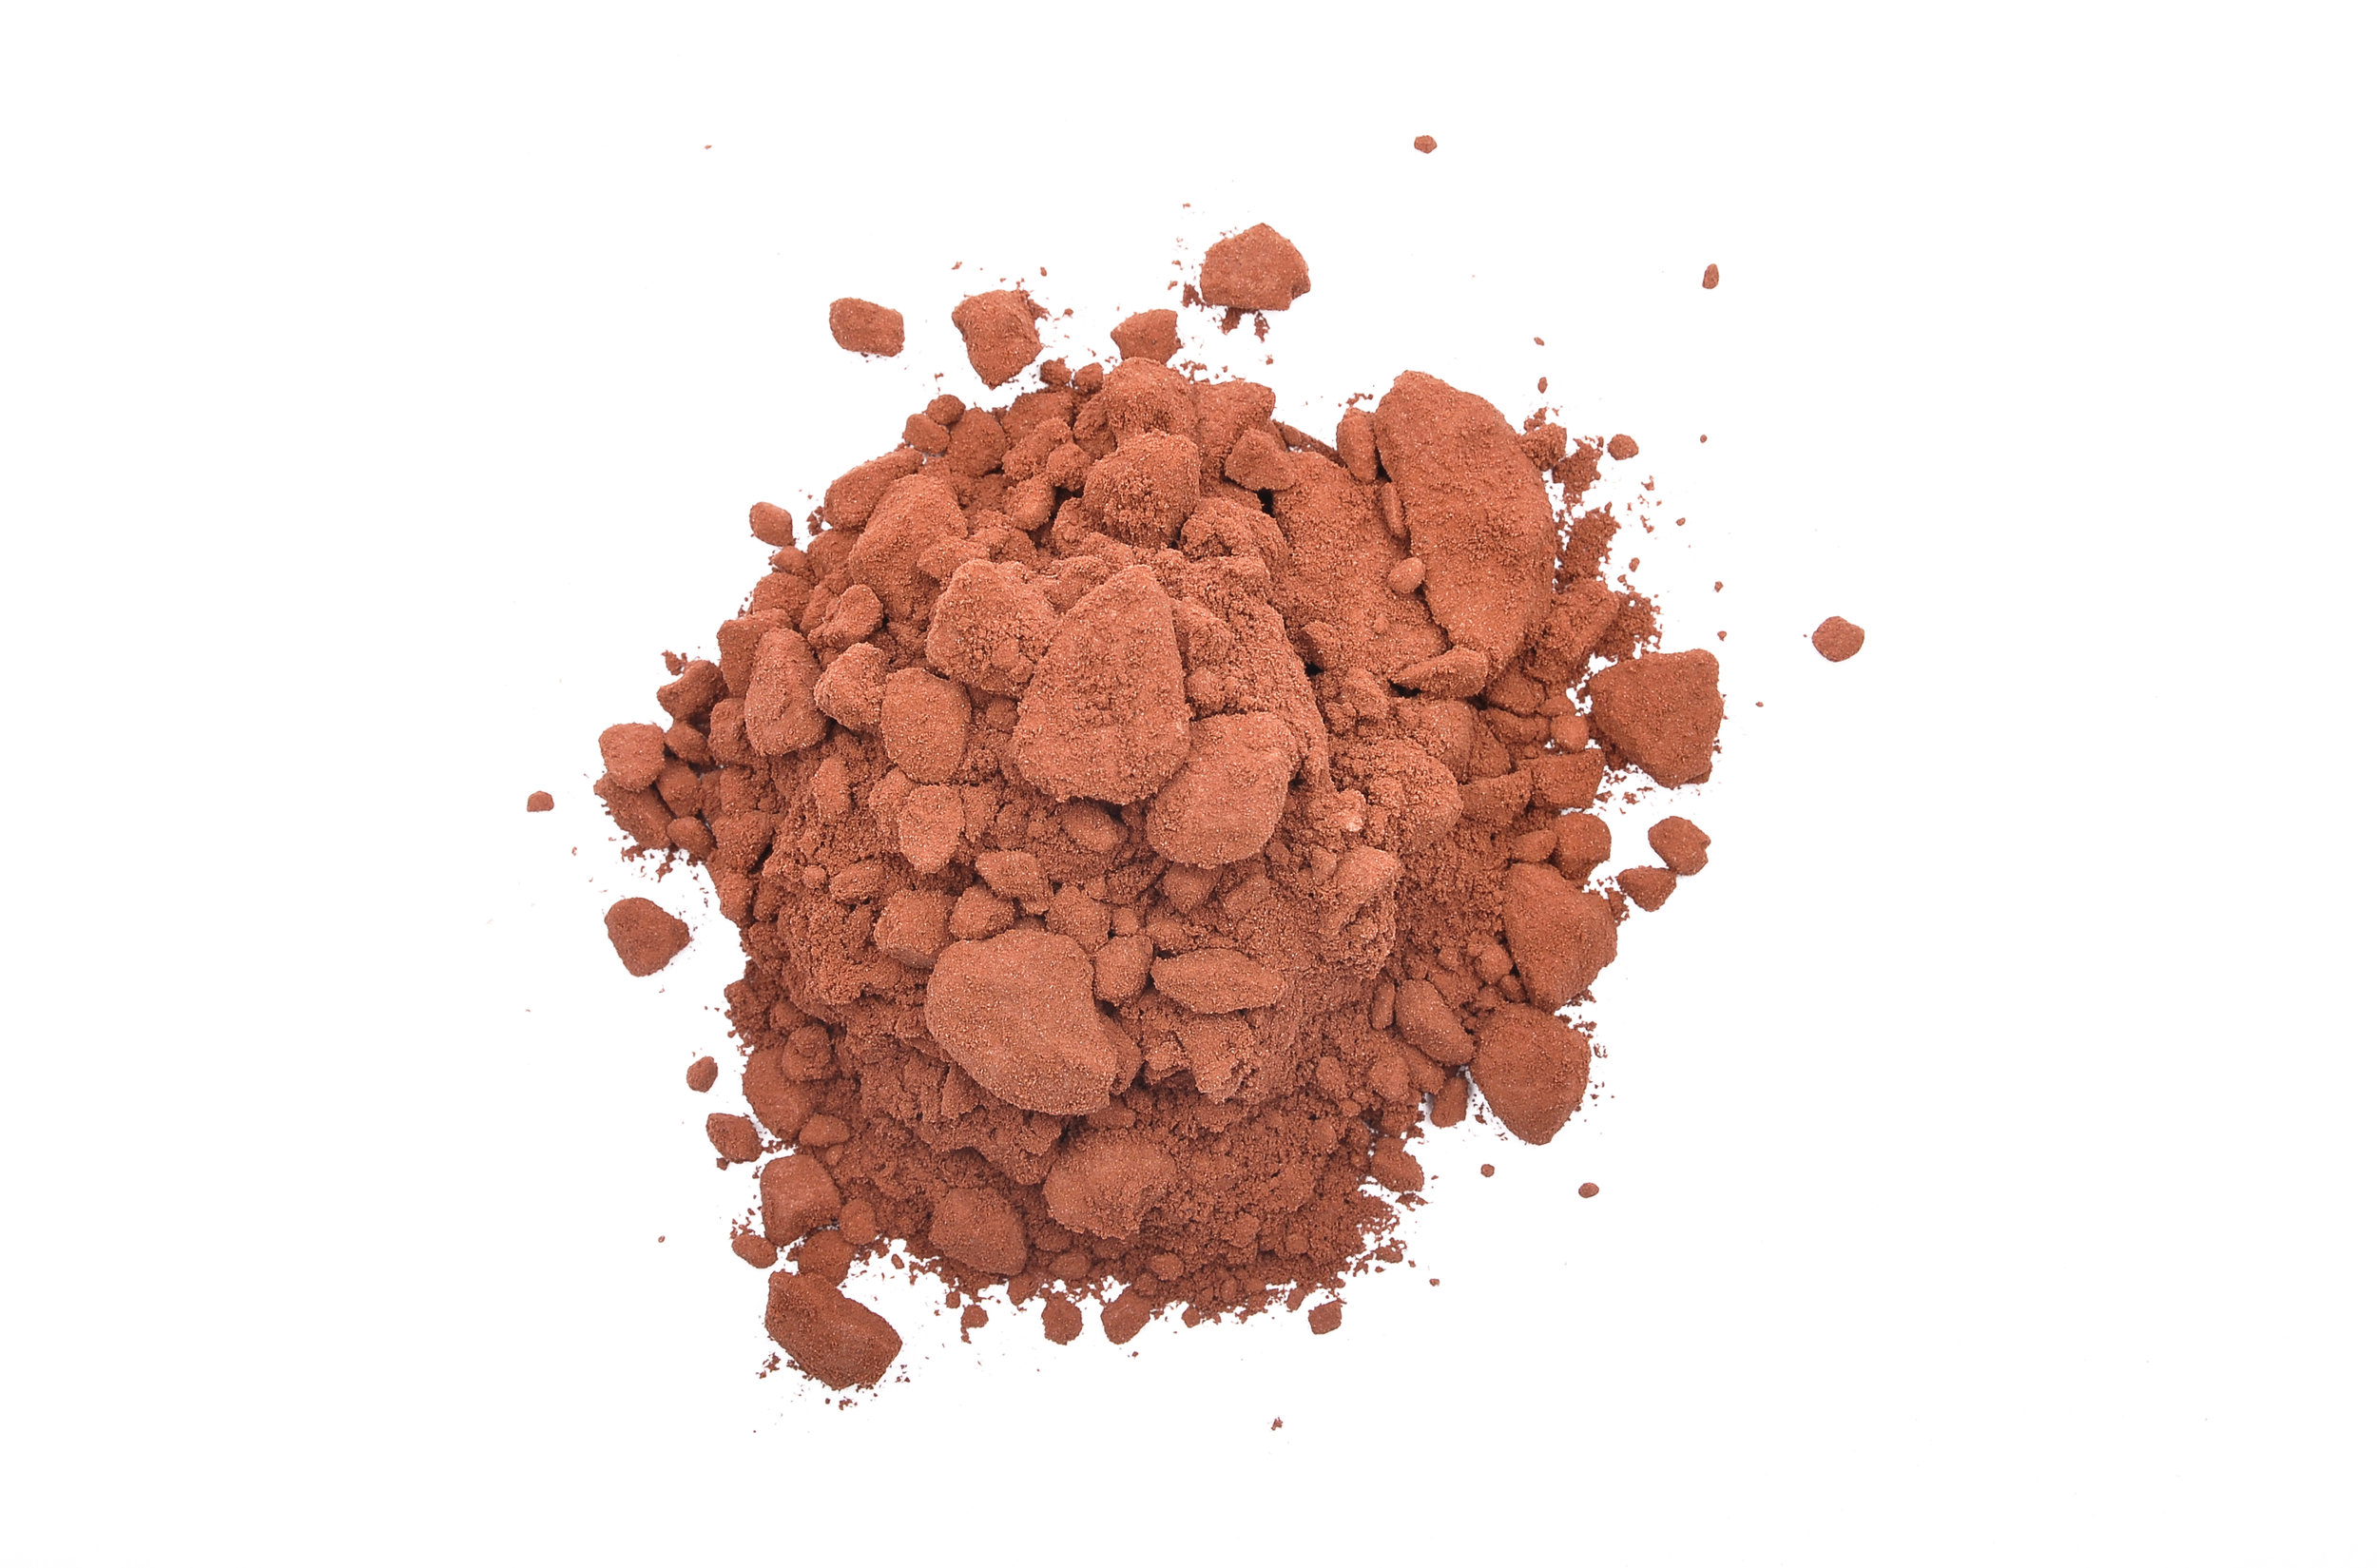 - Health benefits of cocoa seed powder include decreased inflammation, improved heart and brain health, blood sugar and weight control and healthy teeth and skin.